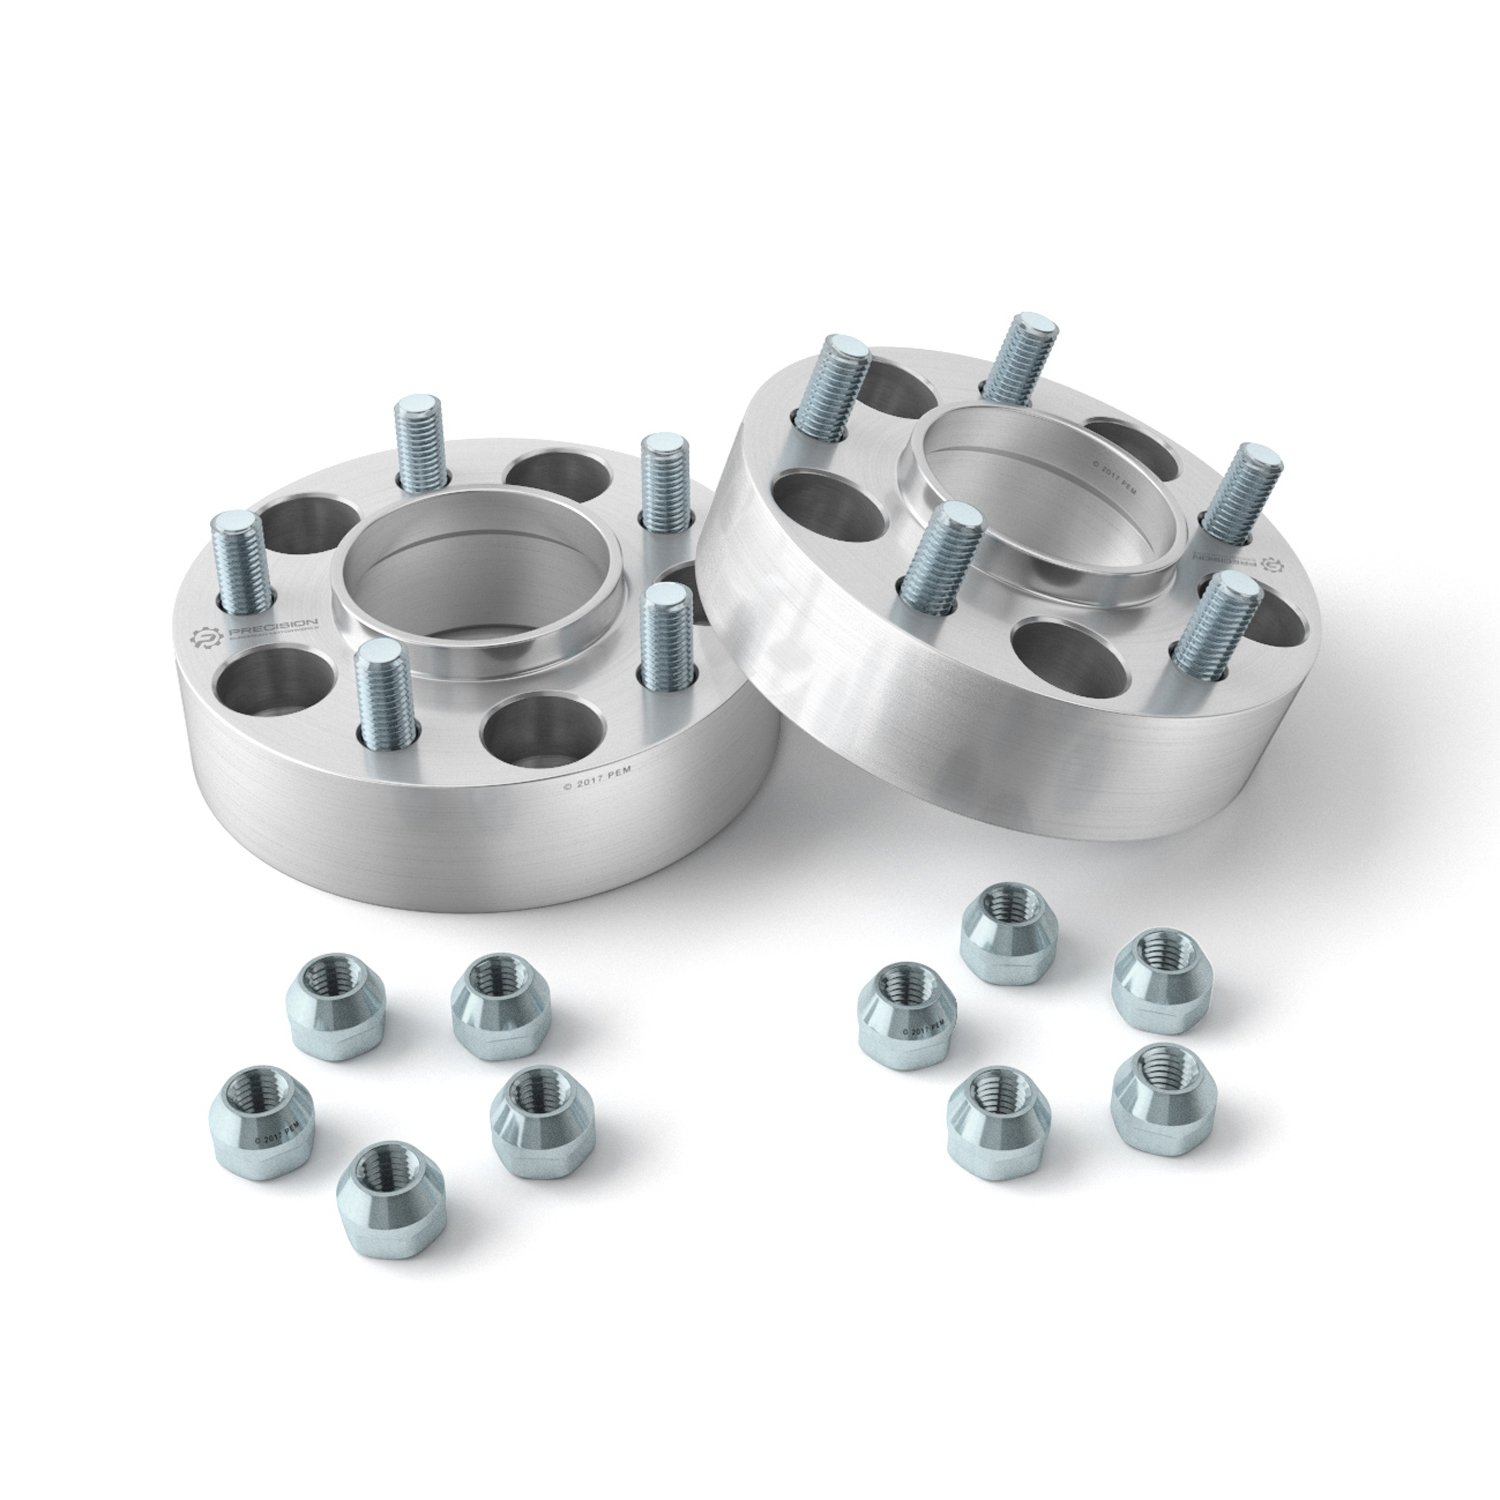 for Jeep Cherokee Grand Cherokee Wrangler Liberty 1//2 Studs 2pc 1.5 Thick HUBCENTRIC Wheel Adapters Spacers 5x4.5 to 5x5 71.5mm bore 1//2 Studs CHANGES BOLT PATTERN RockTrix for Precision European for Jeep Cherokee Grand Cherokee Wrangler Liberty